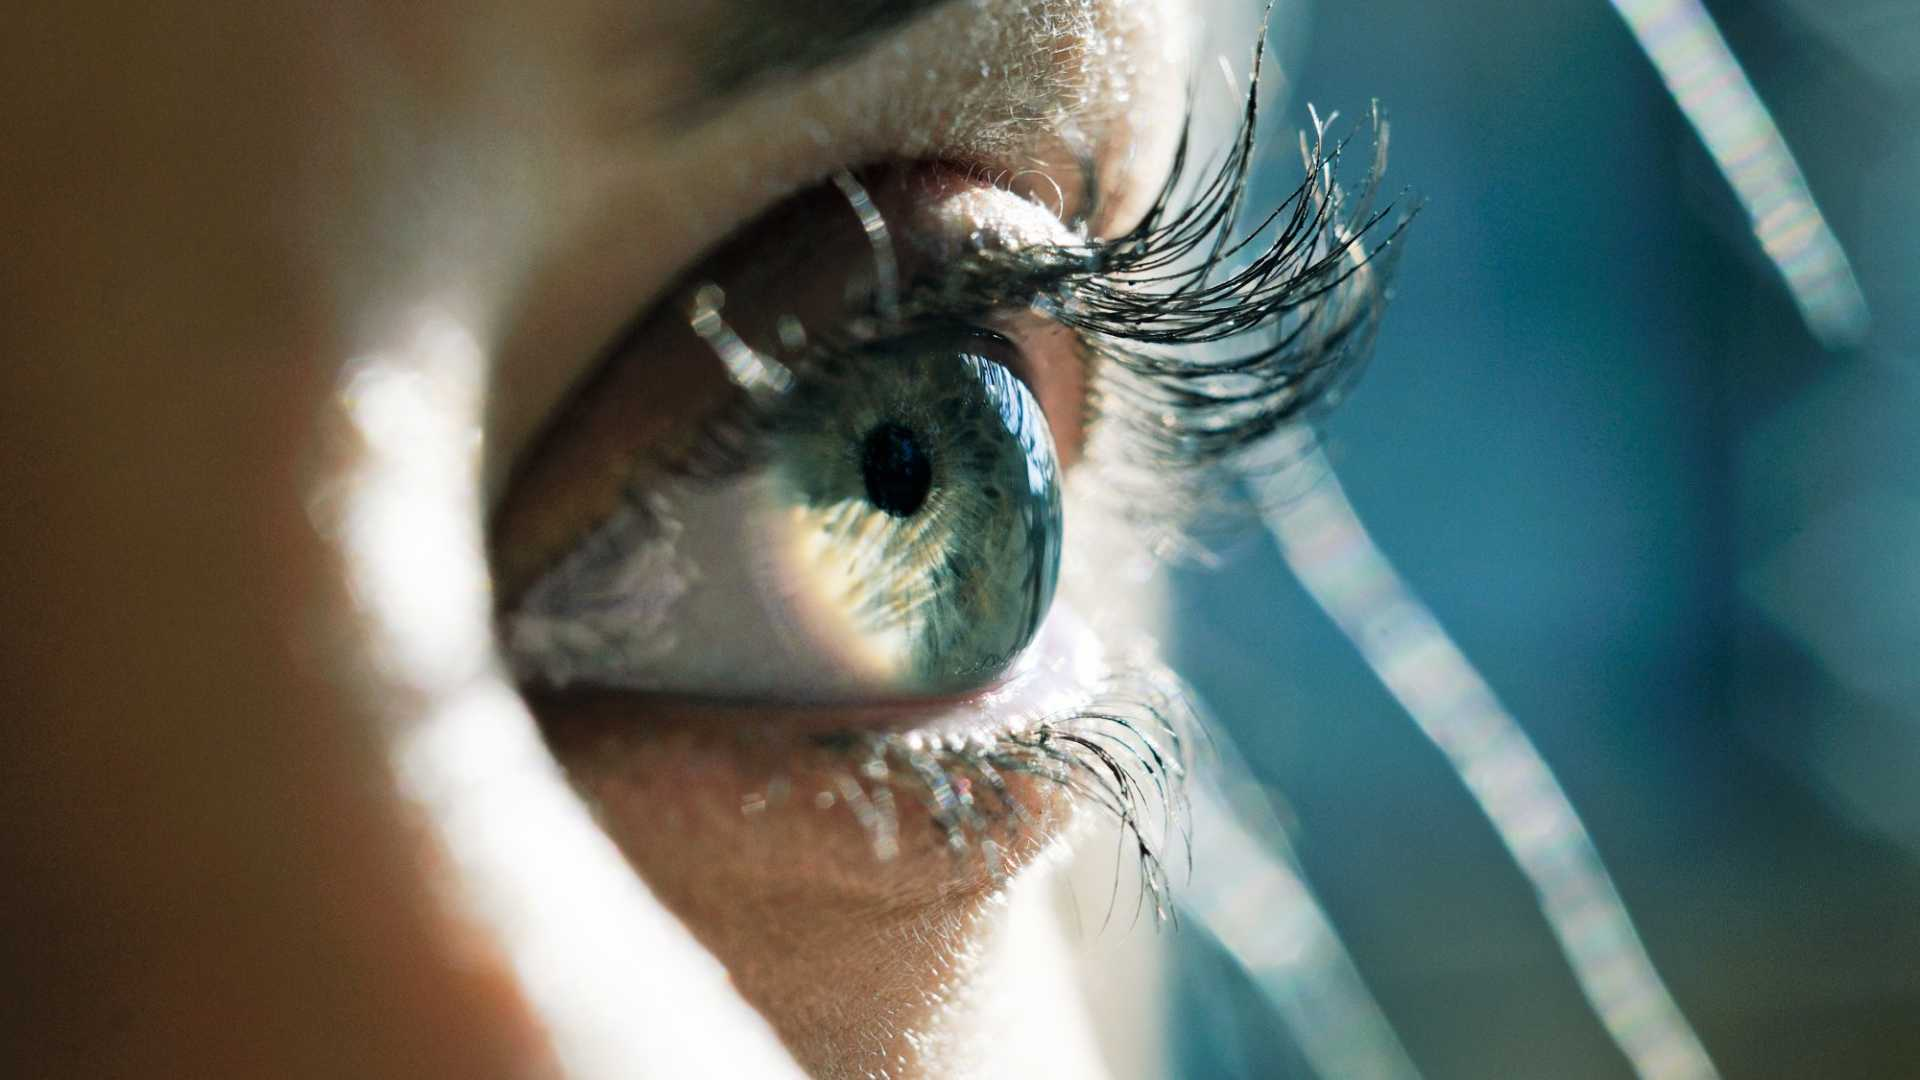 A clear-eyed view of the world can lead to better decision making.